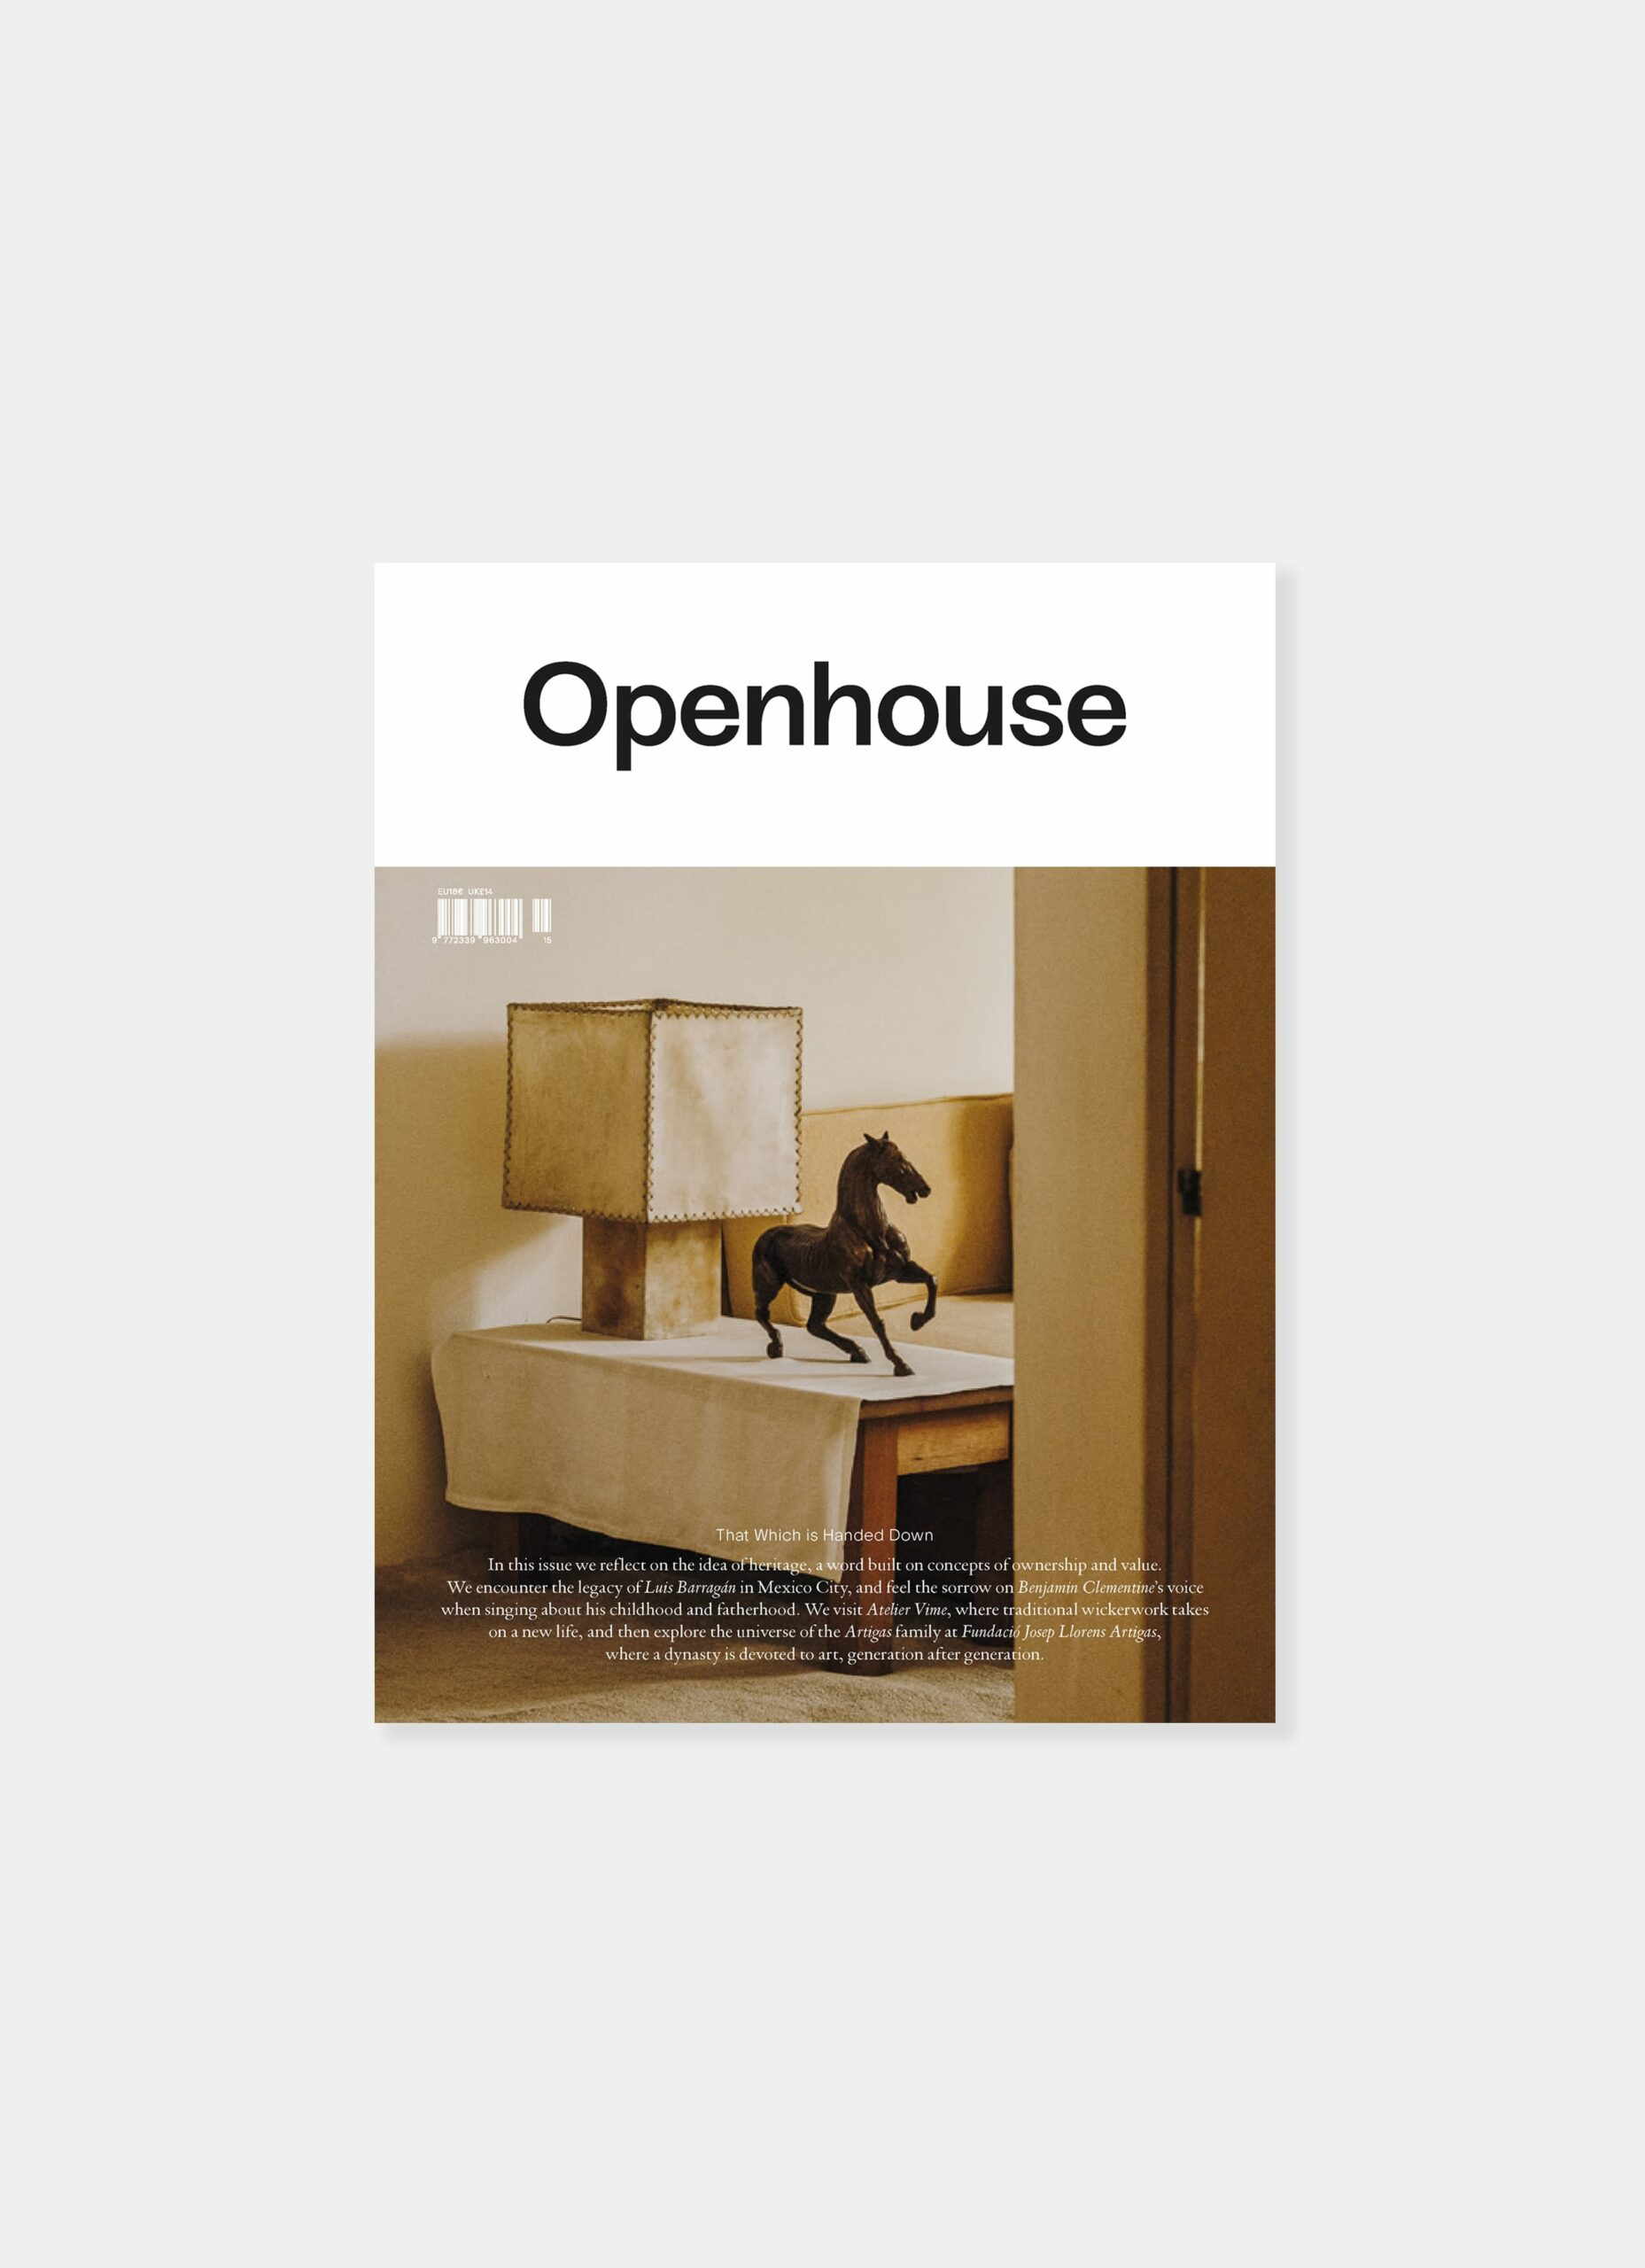 Openhouse Magazine - Issue 15 - That Which is Handed Down